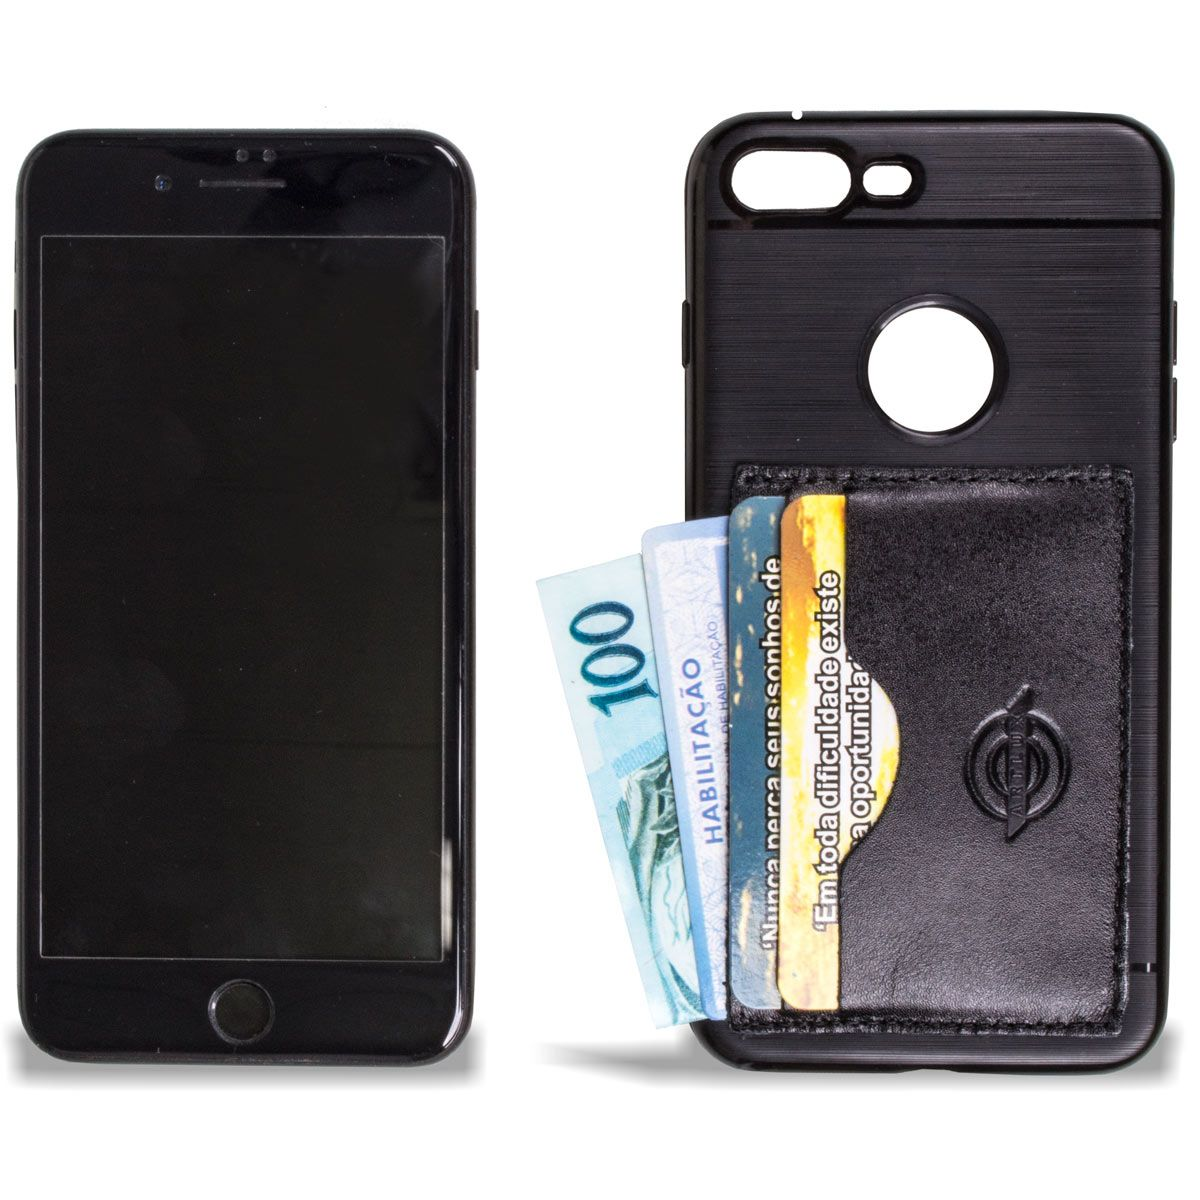 Kit Case para Iphone Plus 7 Black mais Porta Fone